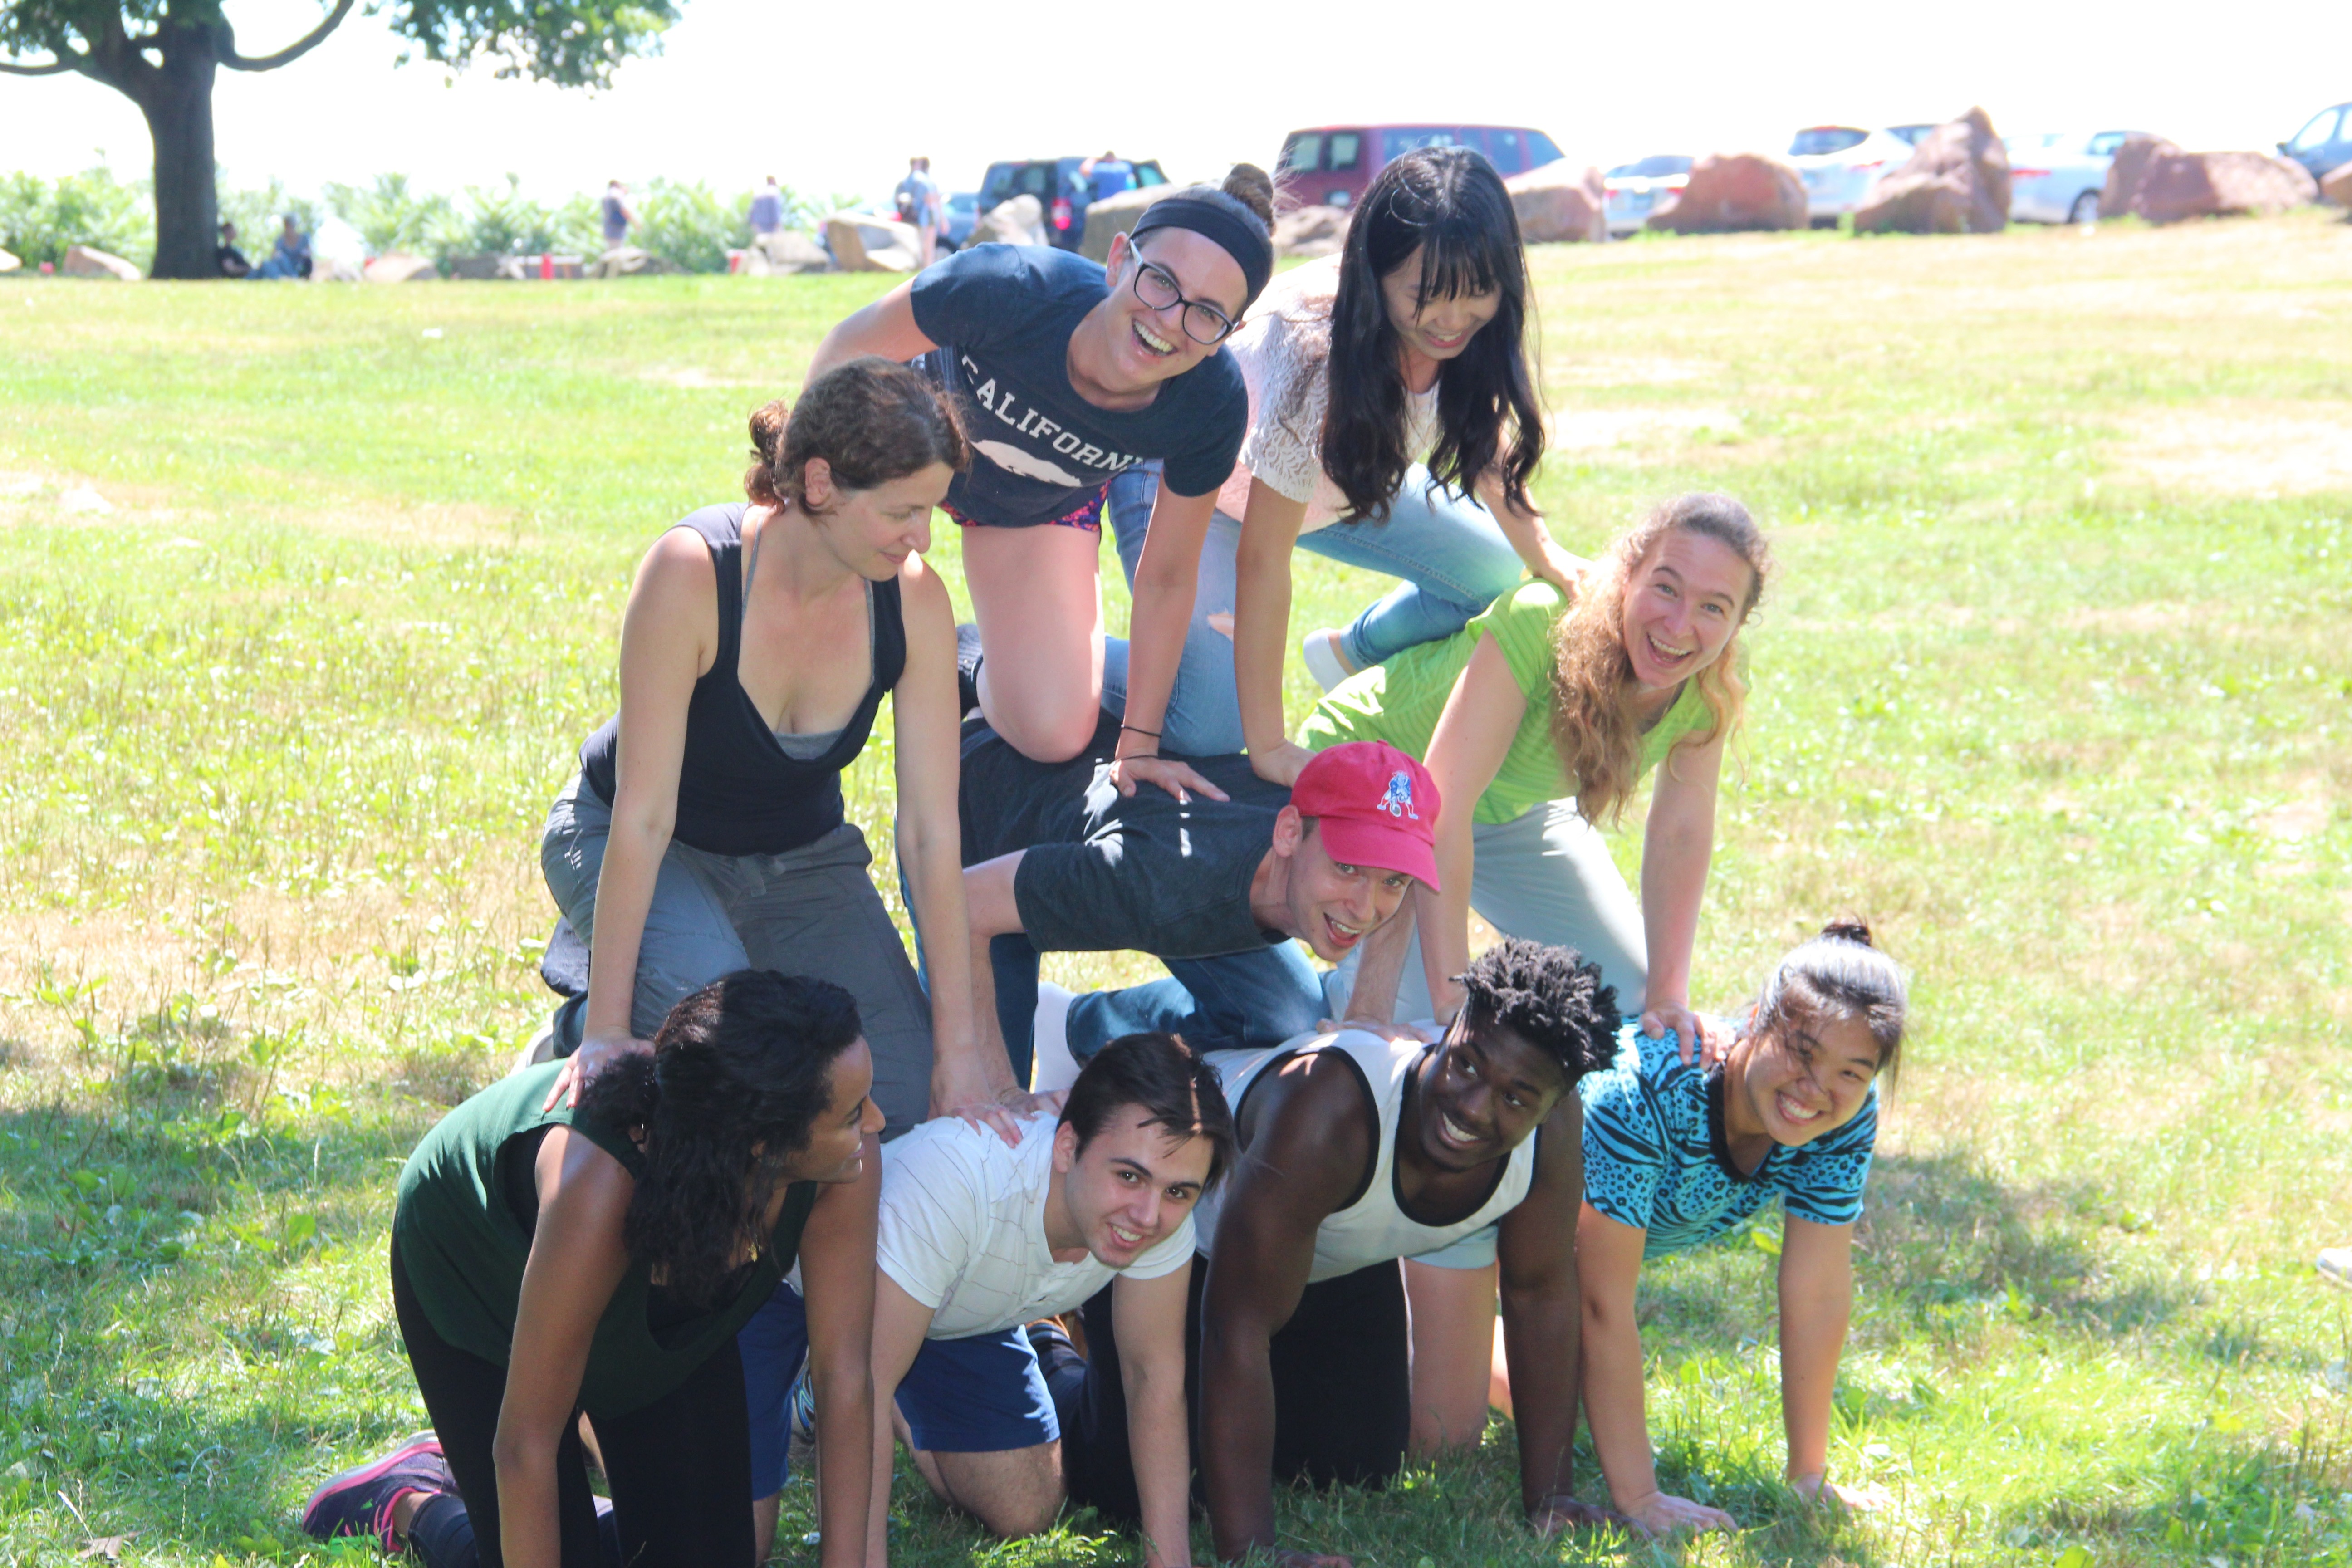 20160804_labouting_IMG_5099_small